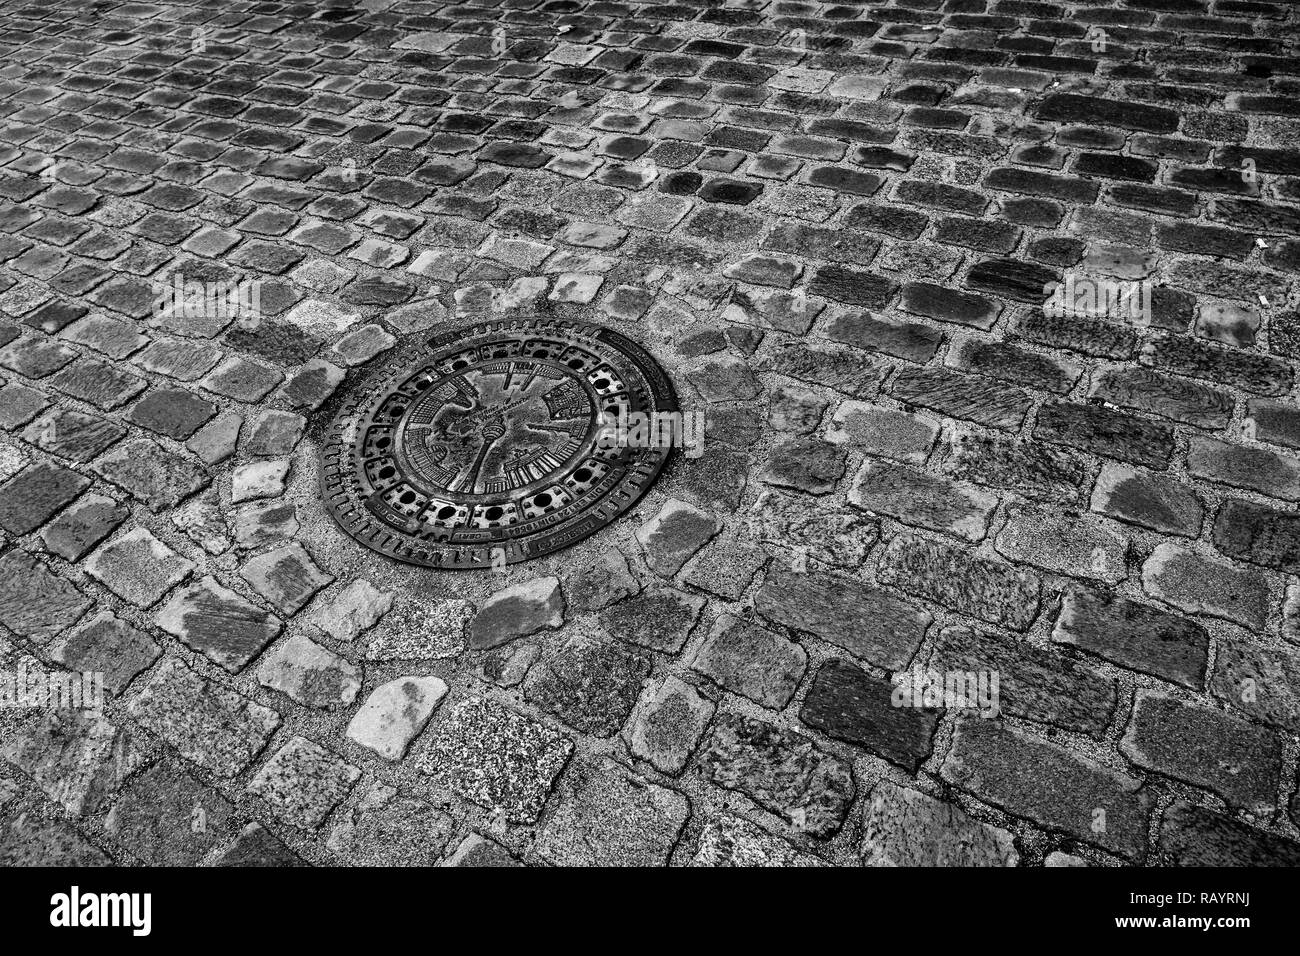 A cobblestone street In Berlin, Germany with the television tower on a manhole cover (black and white) - Stock Image